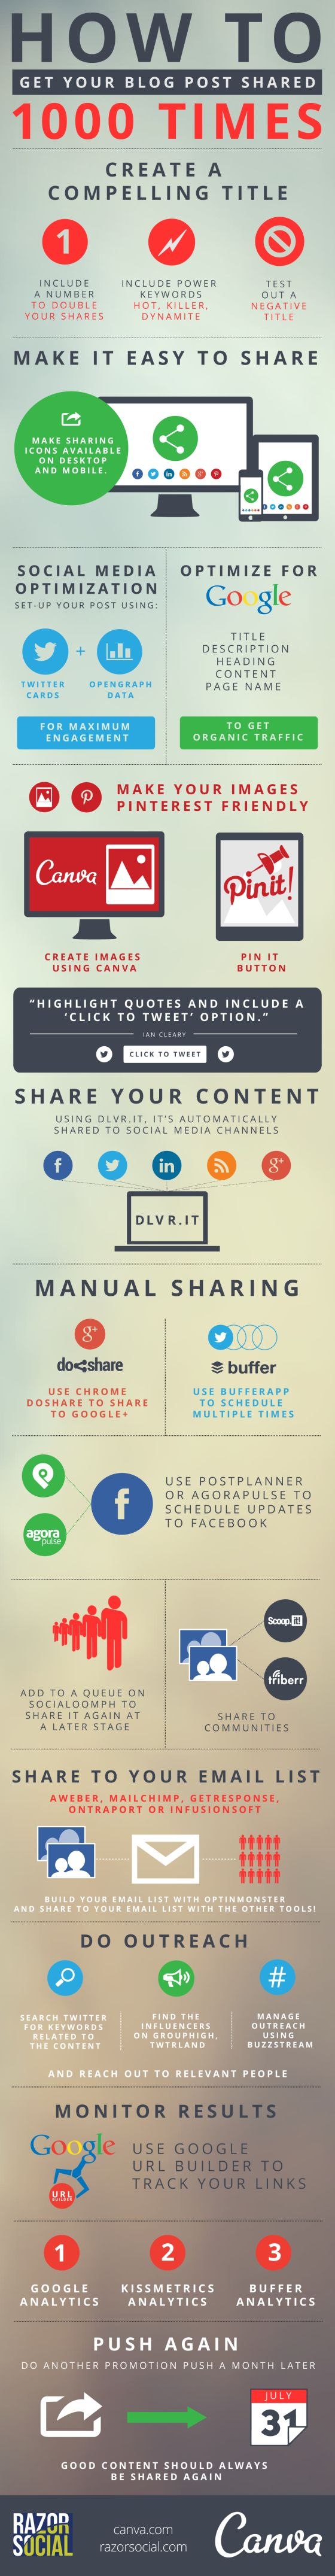 this infographic shows you how to get your blog posts shared way more often